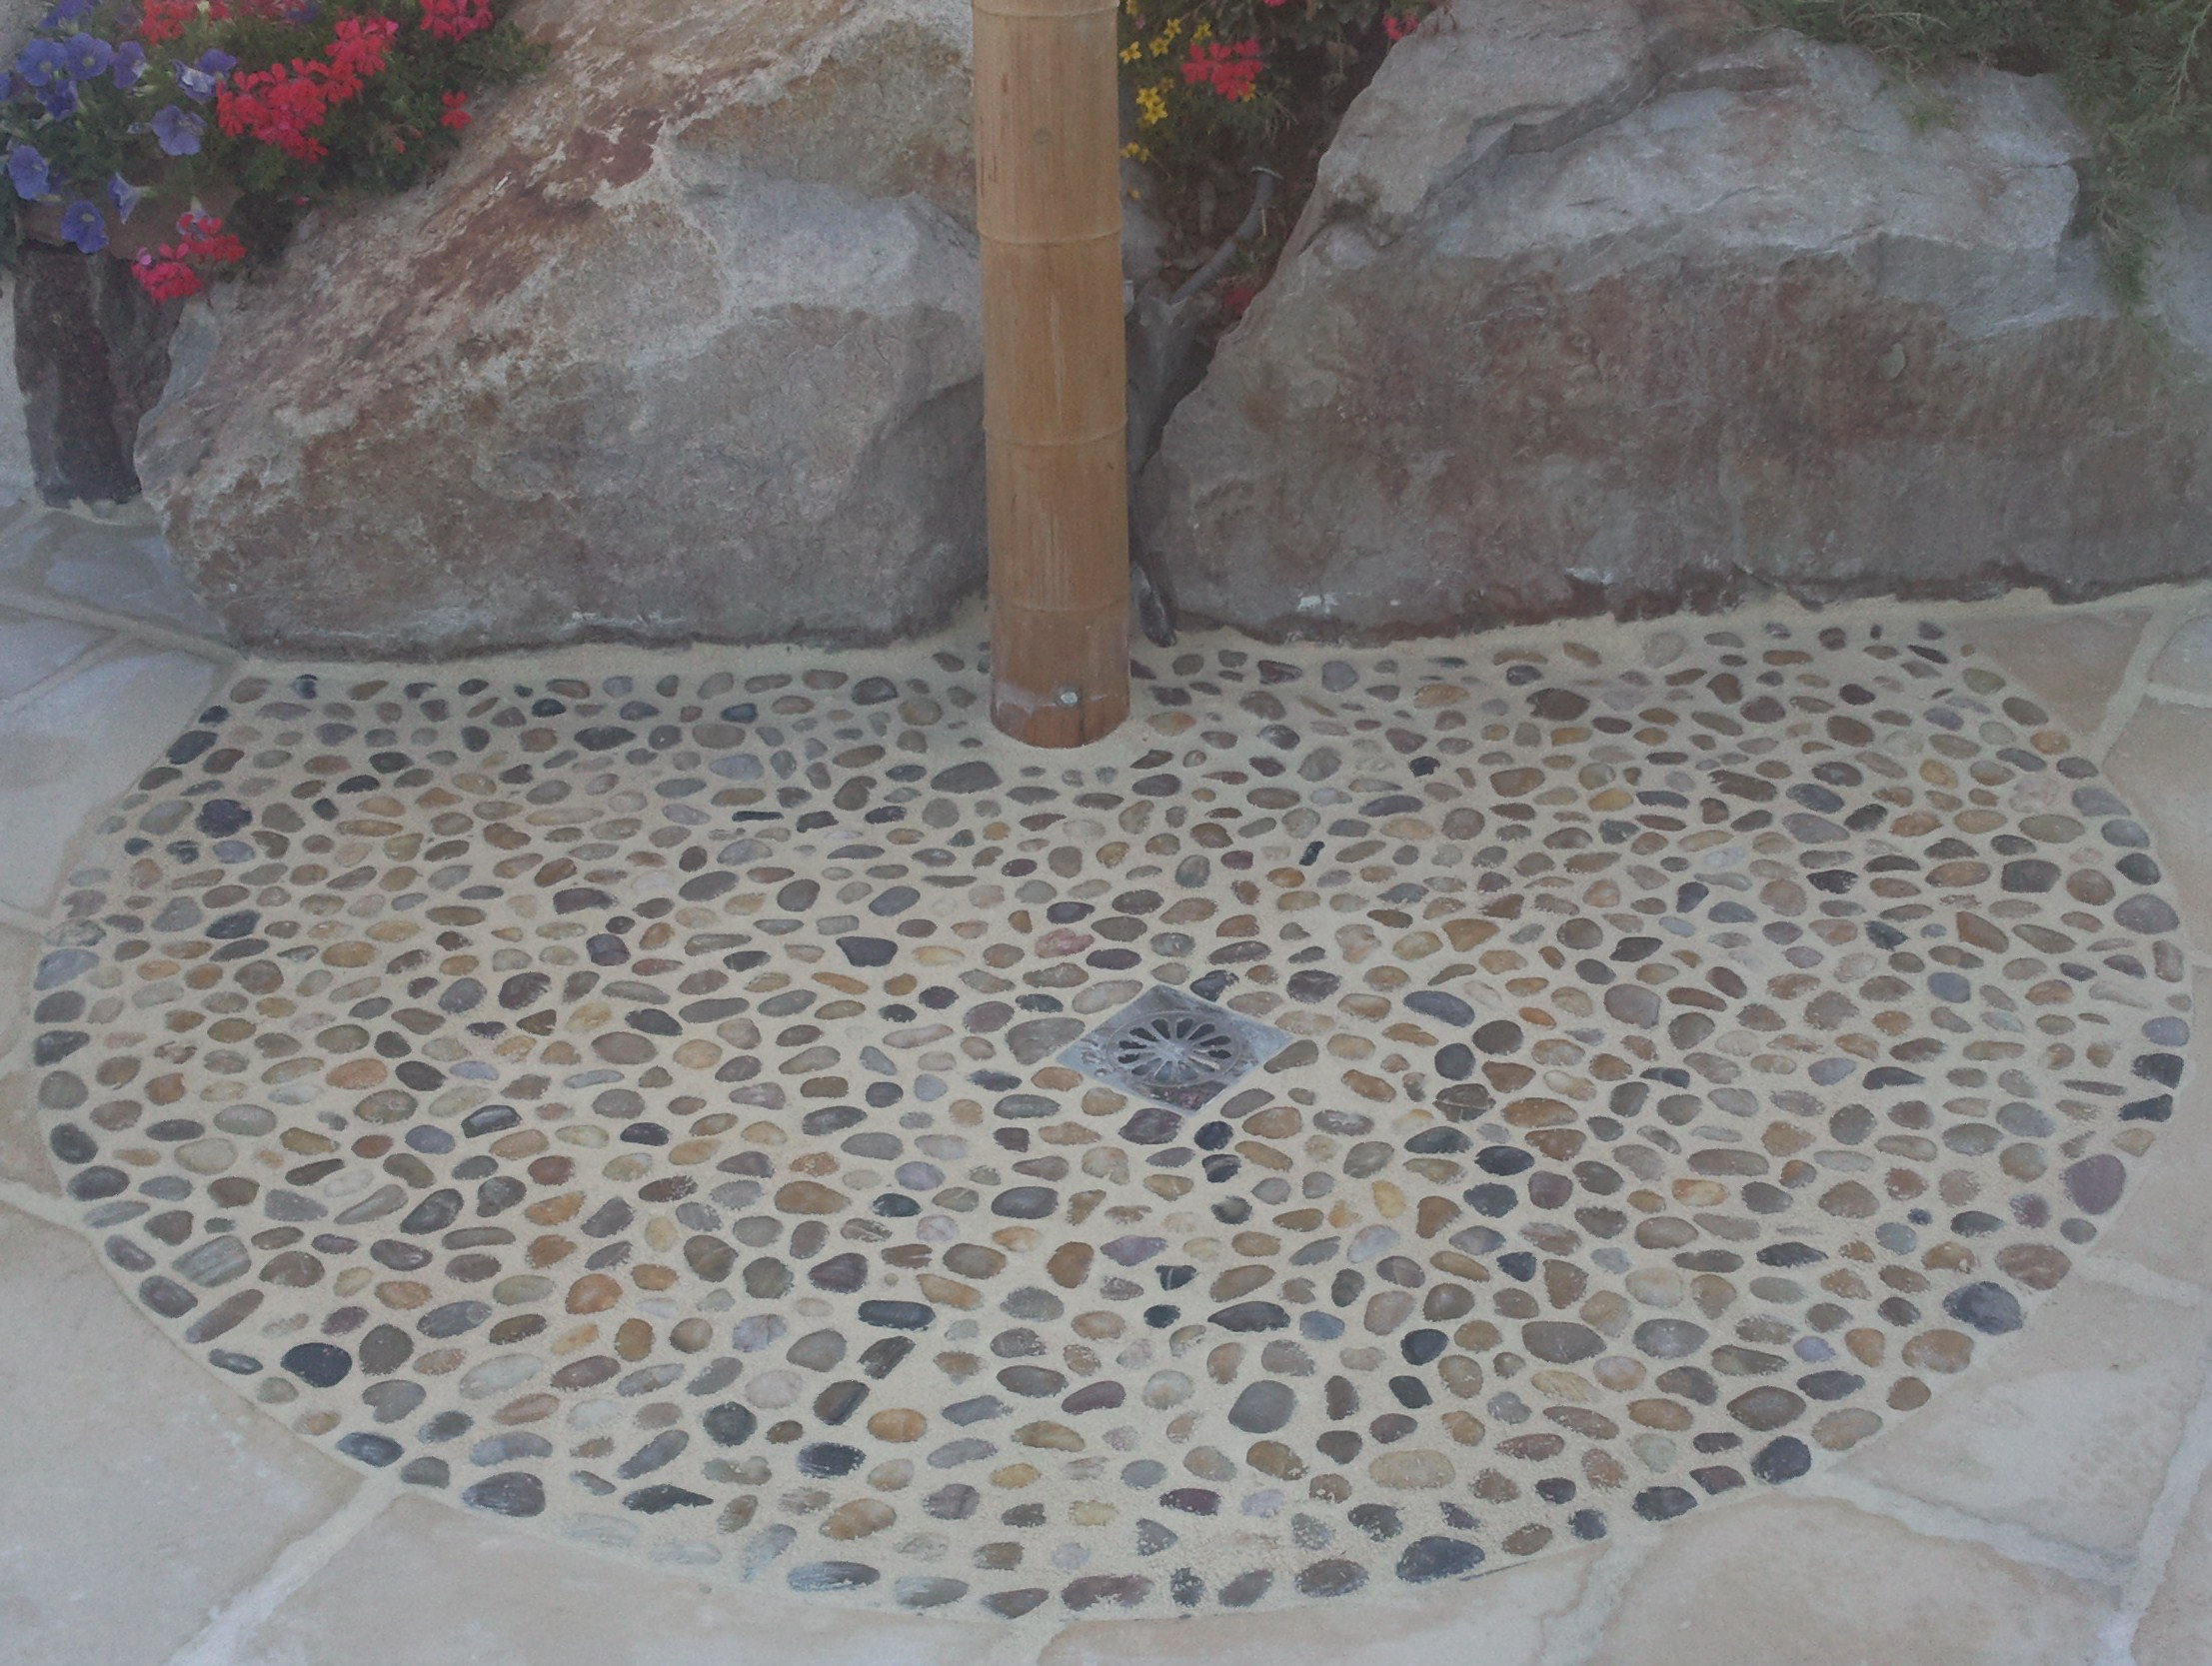 Carrelage mosa que dallage douche italienne - Pose mosaique douche italienne ...